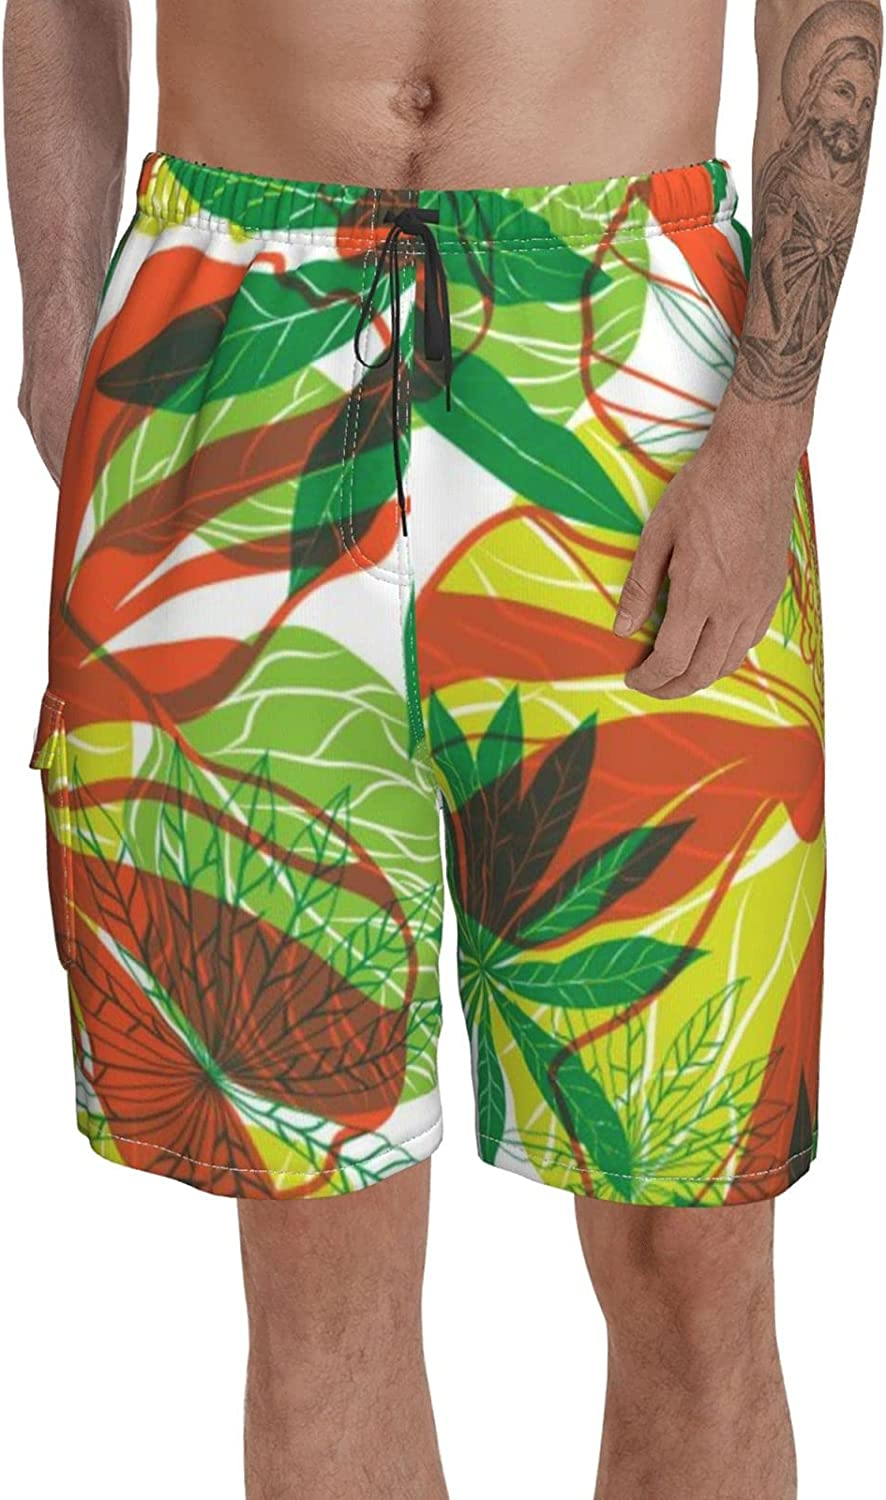 Btrada Colorful Tropical Watercolor Swim Trunks with Pockets Boardshort Printed Mens Summer Shorts